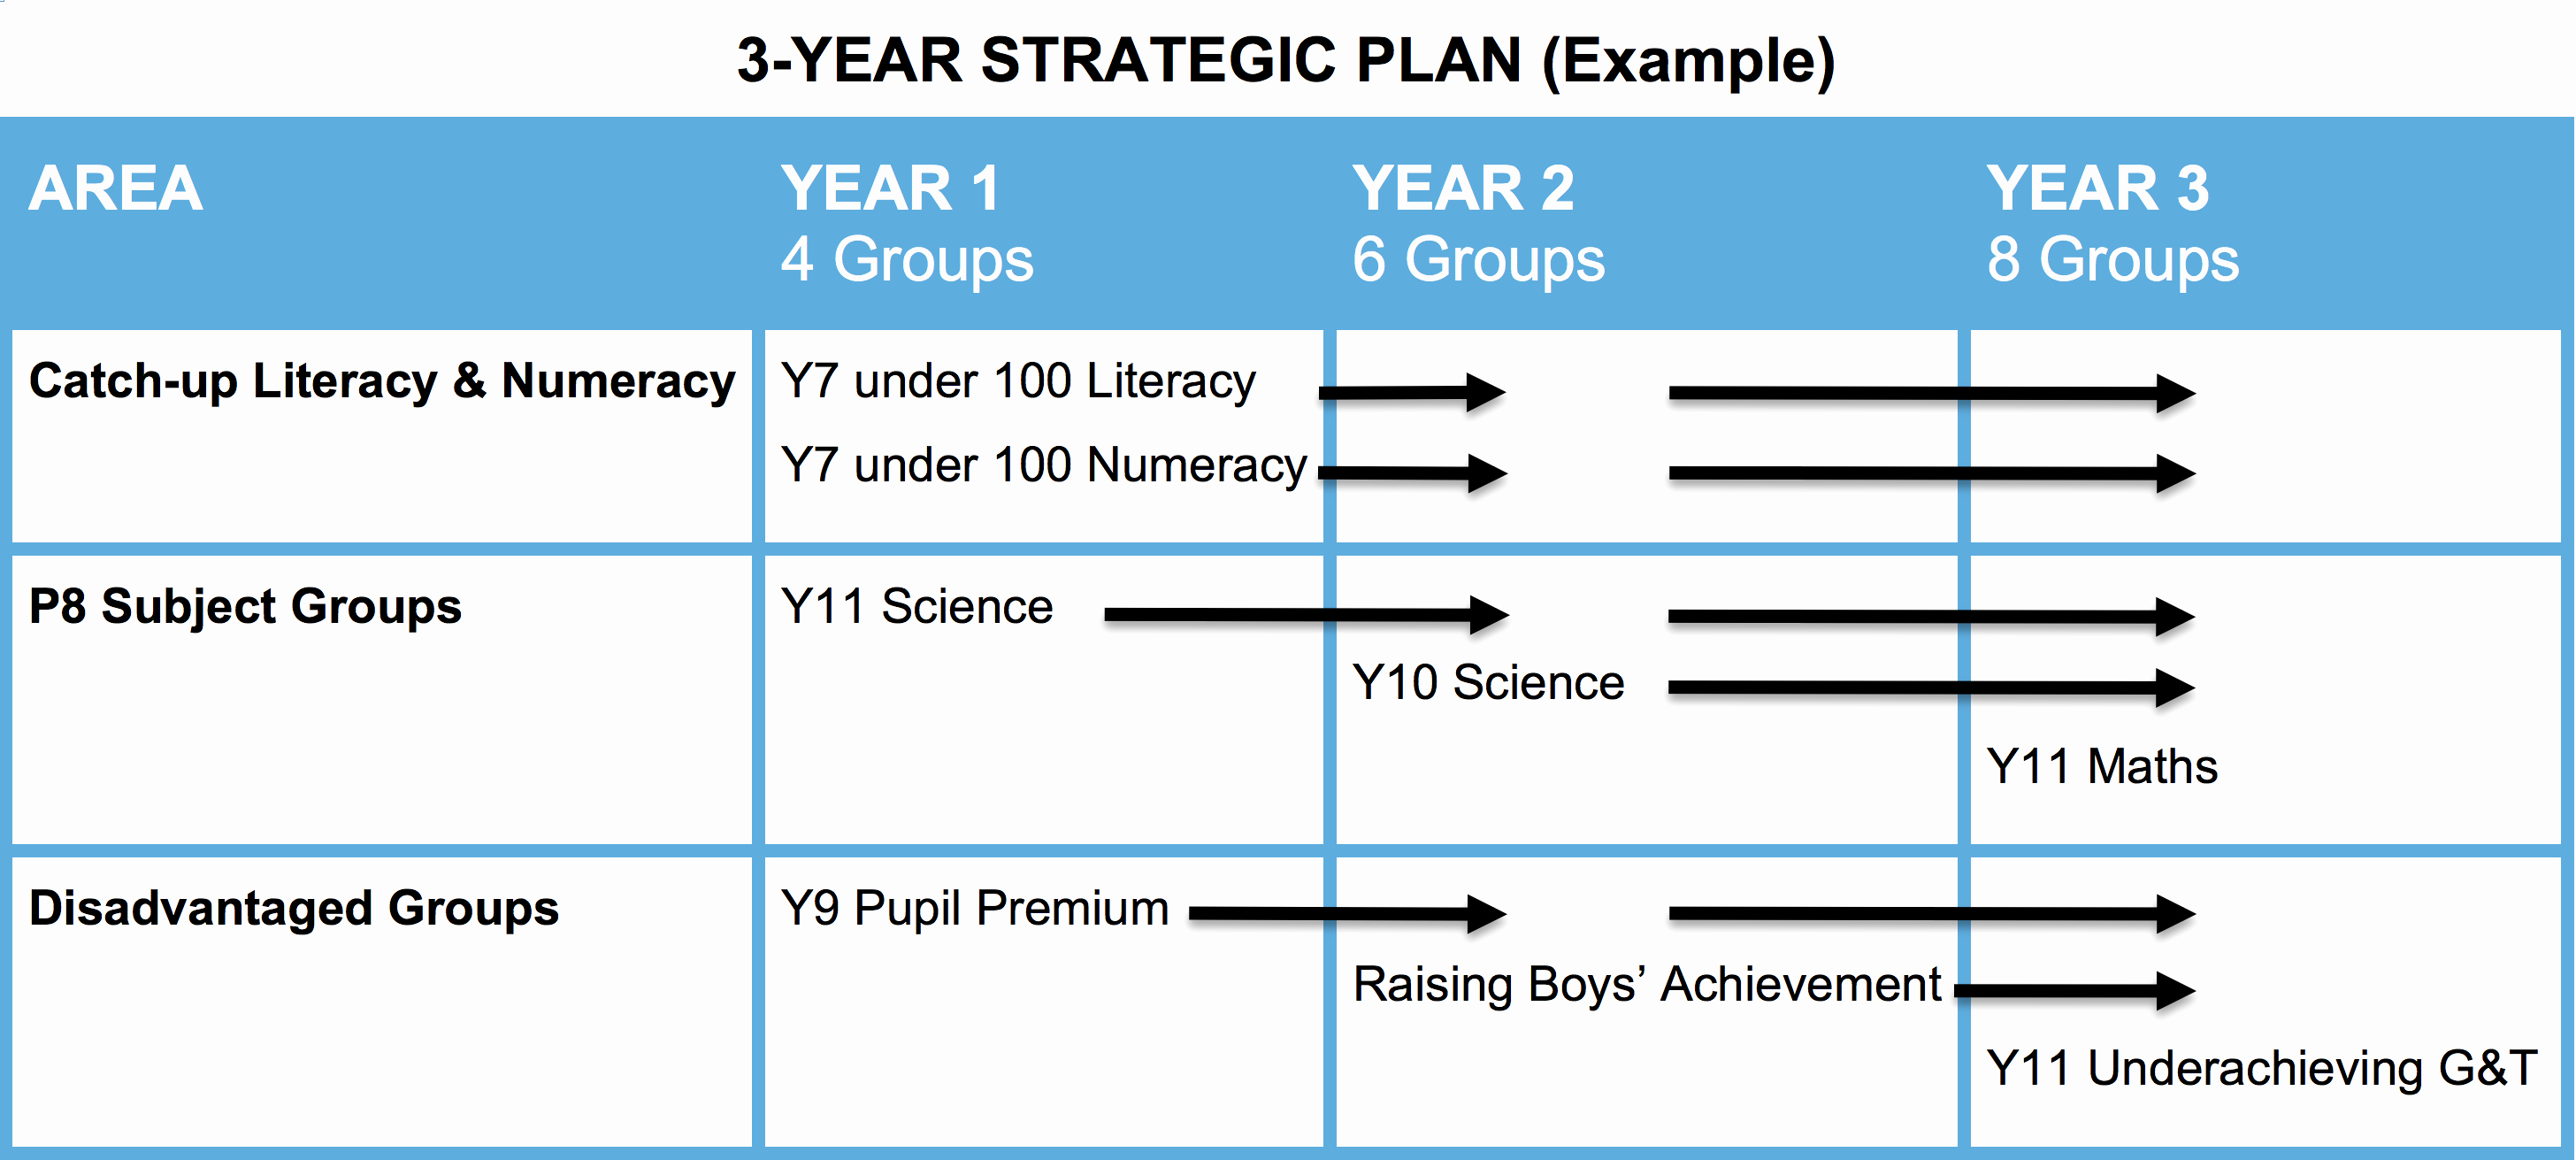 School Strategic Plan Template Elegant Tar Ed Intervention In Schools Improving Literacy & Numeracy In School